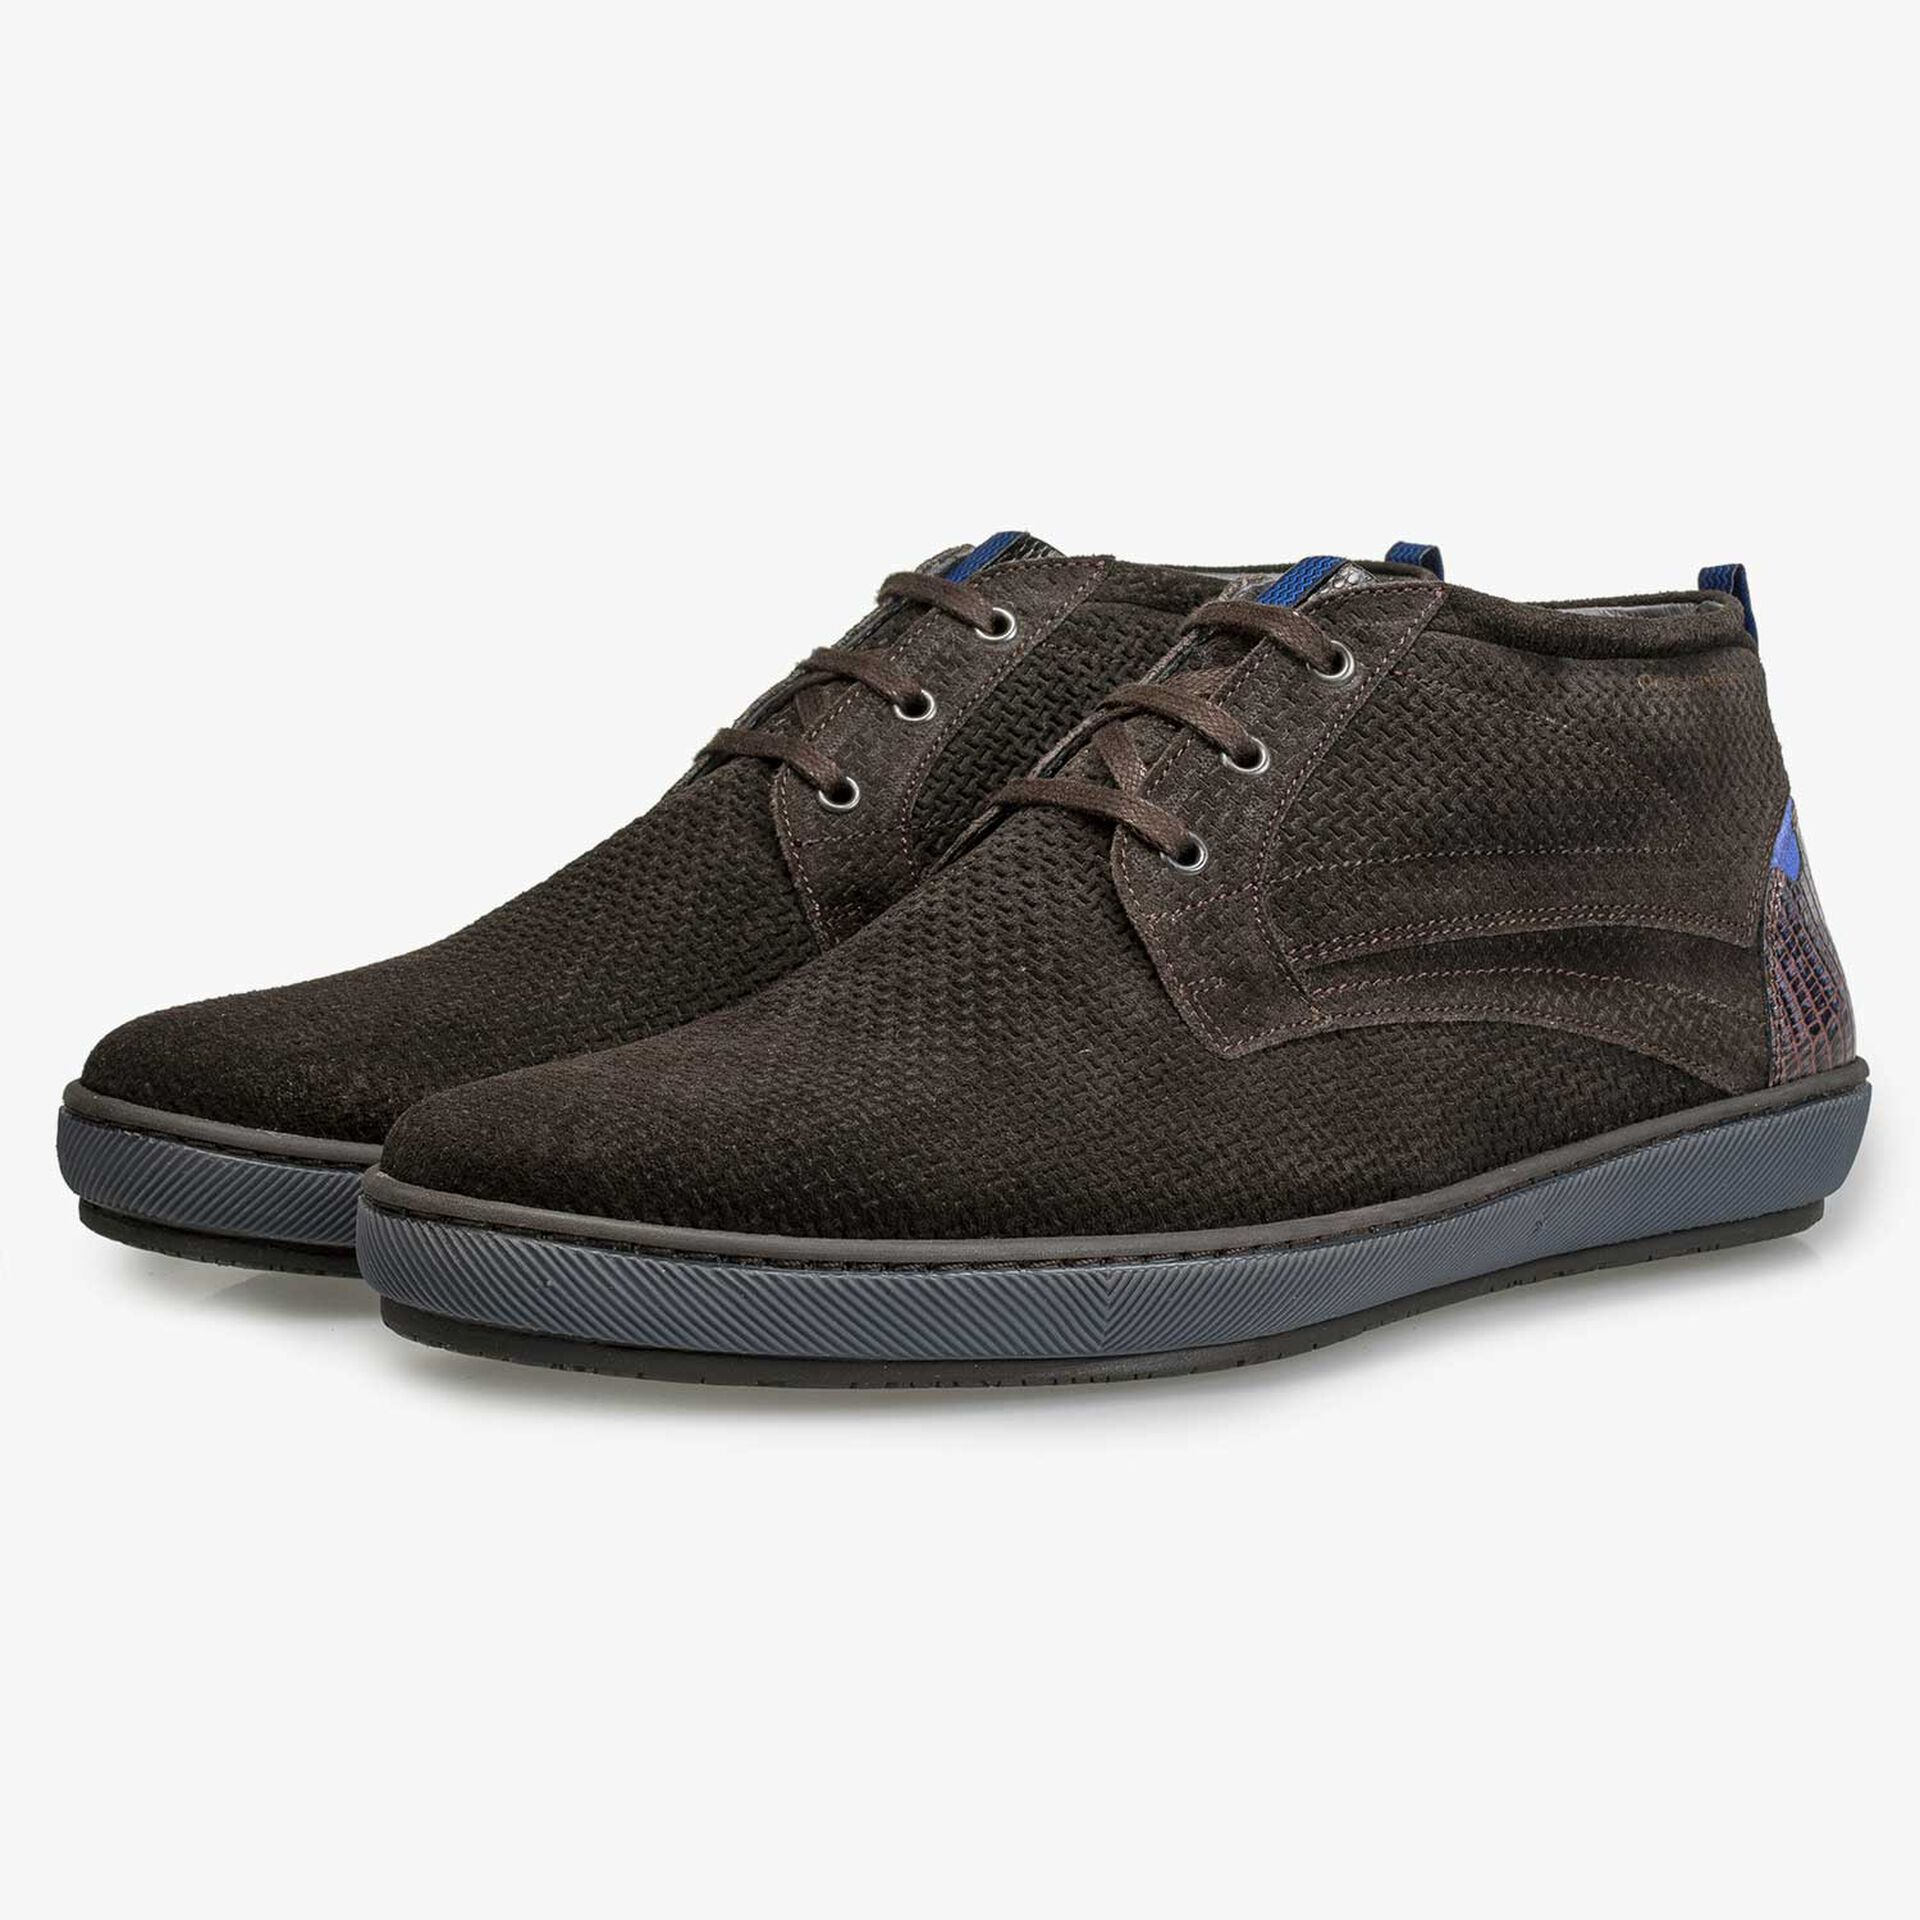 Mid-high dark brown lace boot with structural pattern